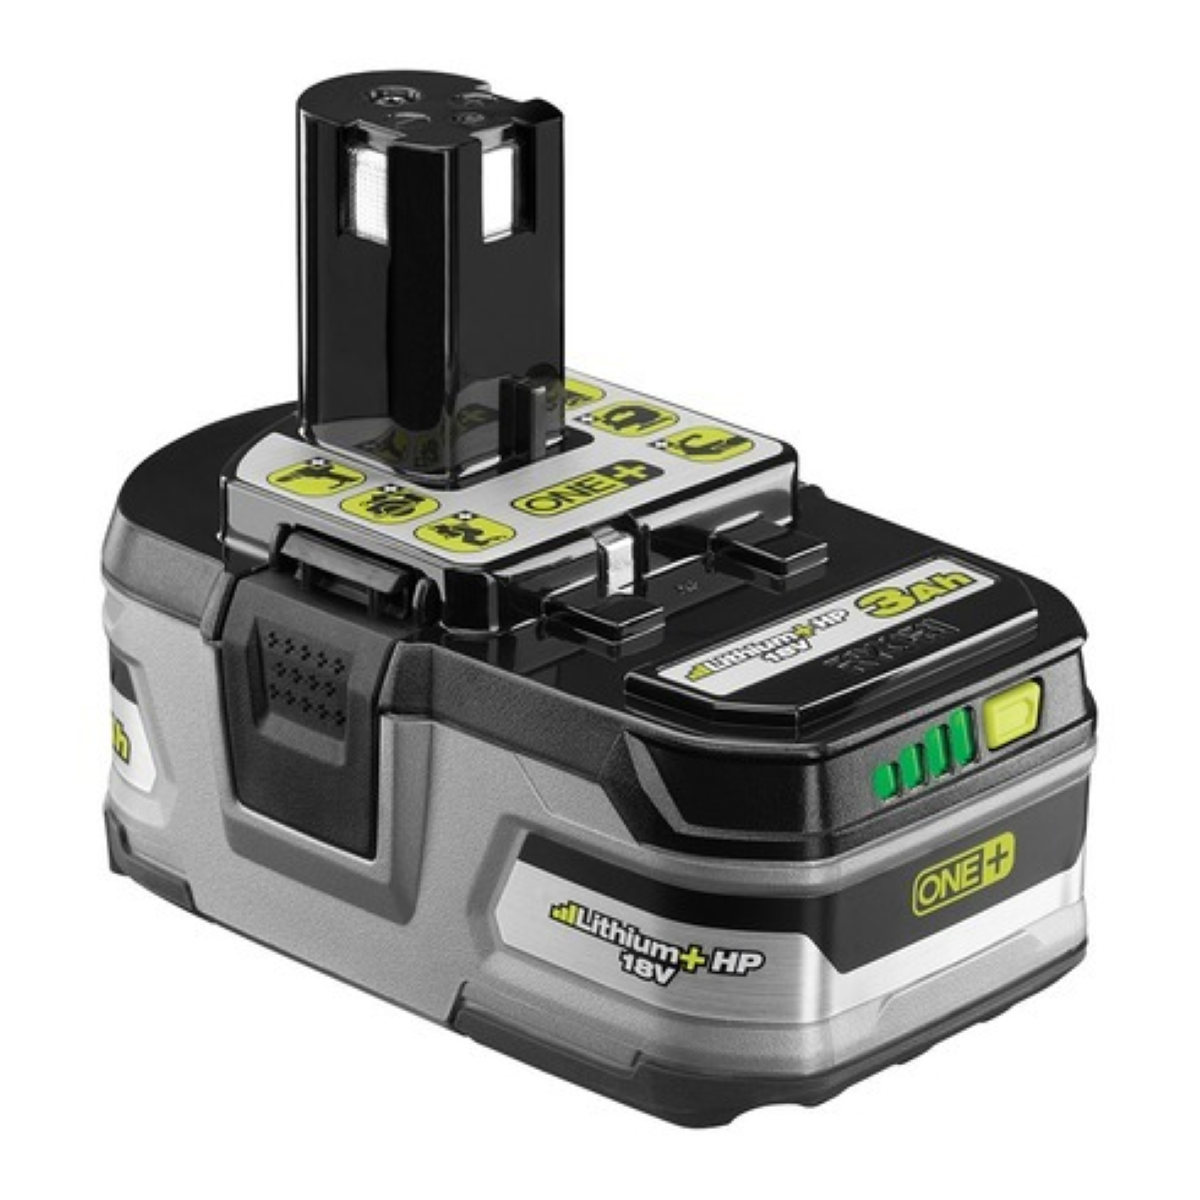 Ryobi P191 18V ONE+ 3.0Ah Battery - Built-In 4-Bar Illuminated Charge Indicator